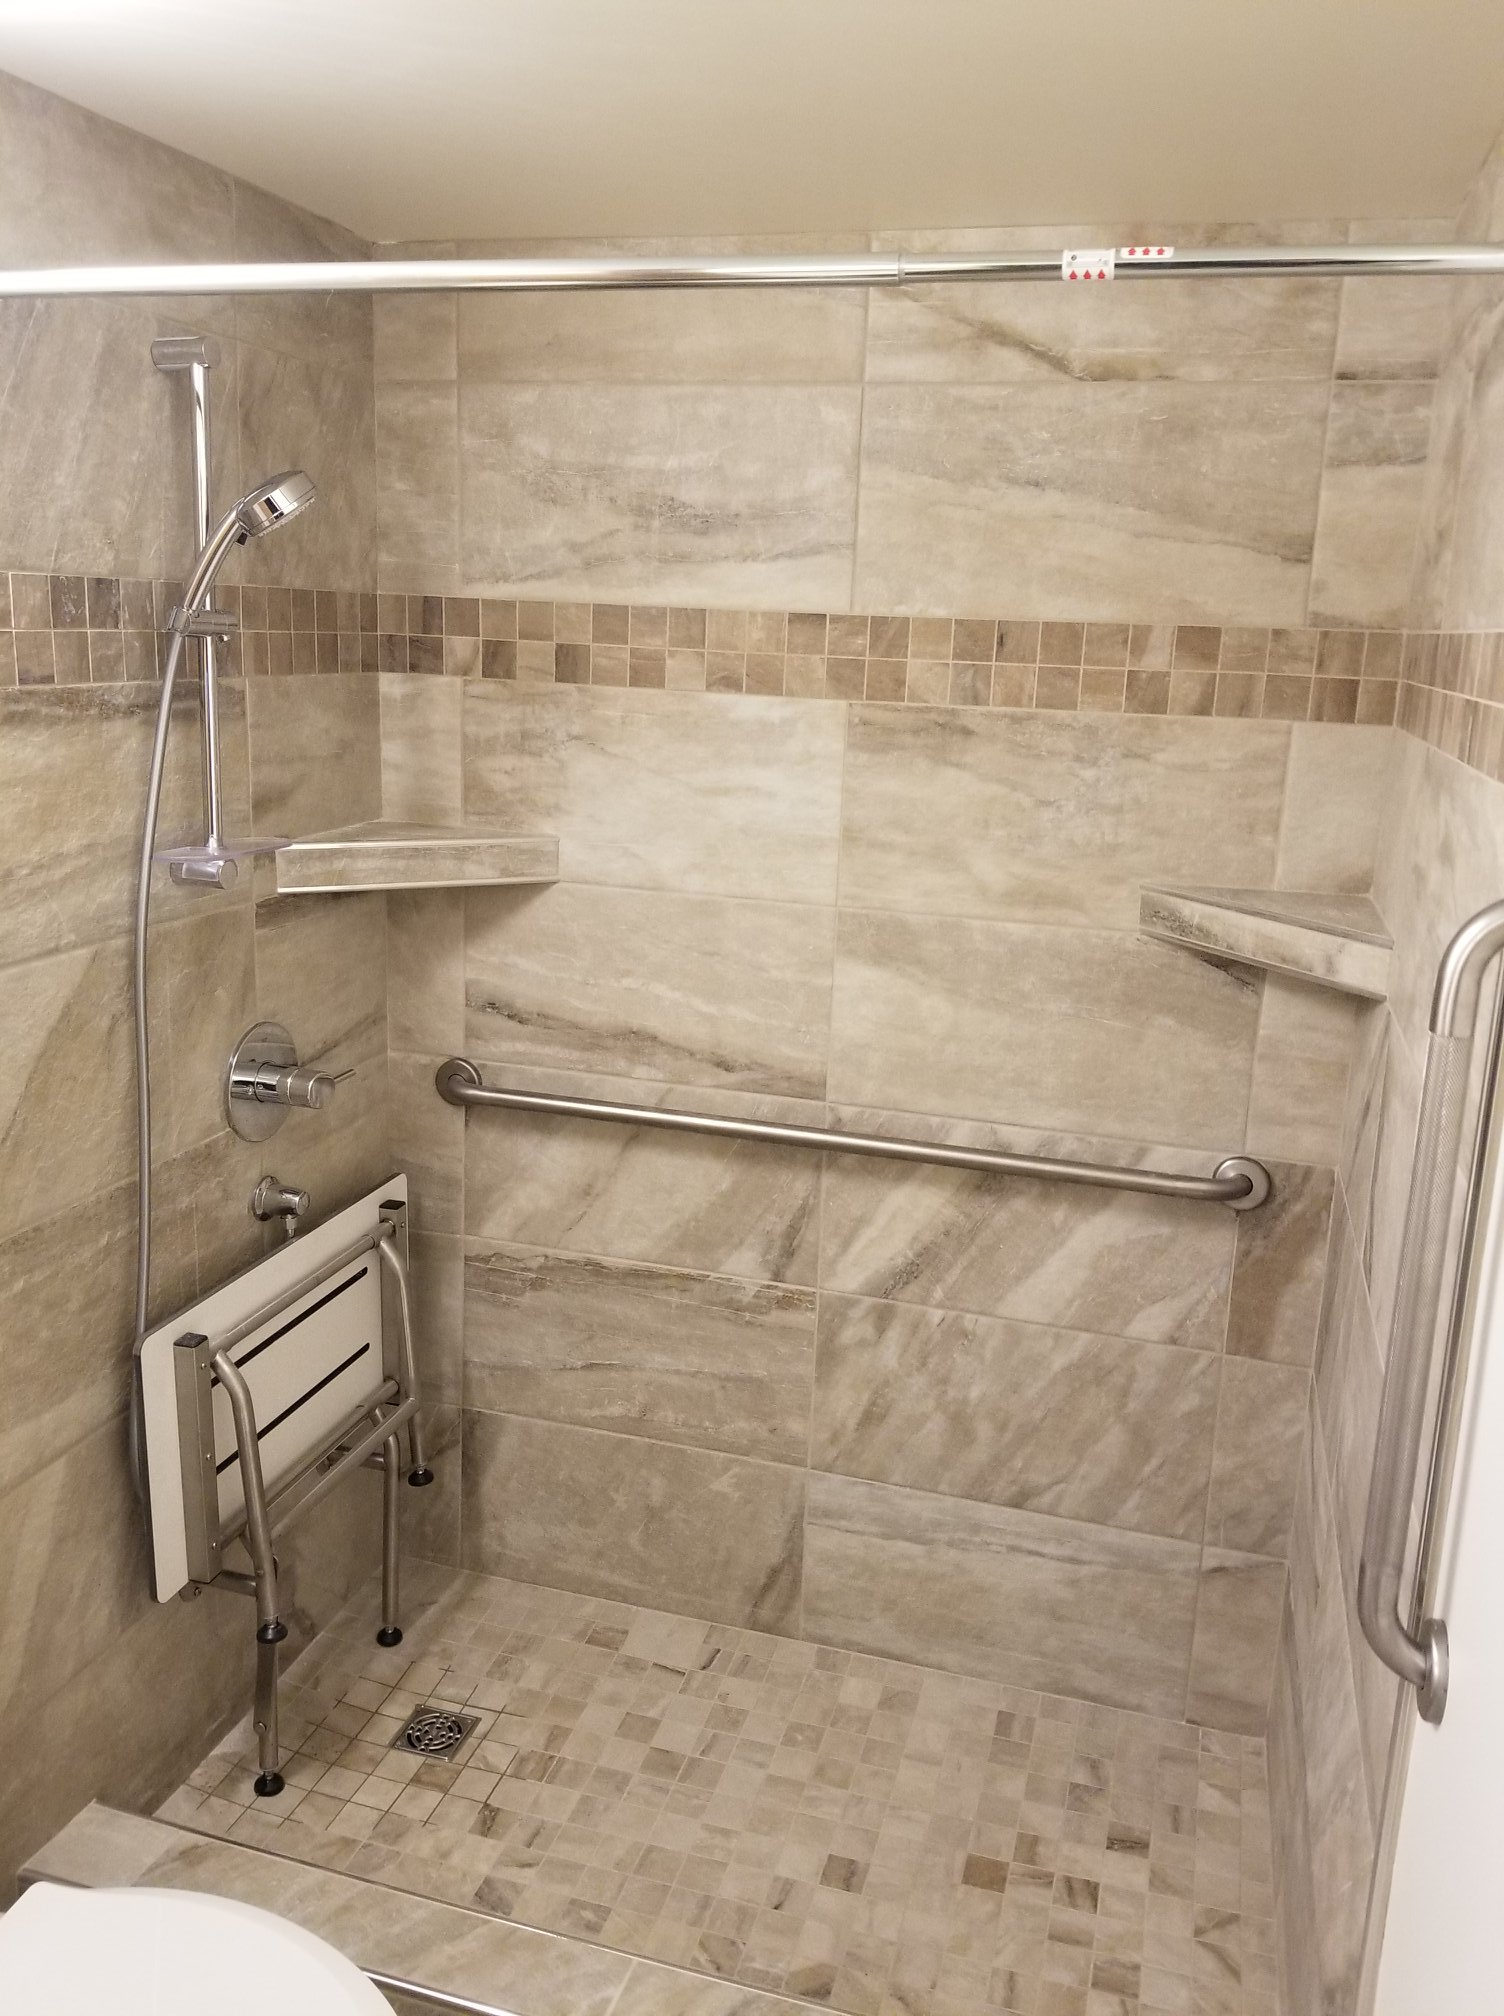 """The shower features some very beautiful tile work as well as the fold down phenolic resin bench. The wall tile is 12""""x24"""" Pearl Almond with 2""""x2"""" Pearl Camel mosaic accent. The floor tile in the shower is a matching 2""""x2"""" Pearl Almond mosaic. The client also chose a Grohe Tempesta Cosmopolitan shower rail set with a Grohe shower valve and Concetto Chrome Trim."""